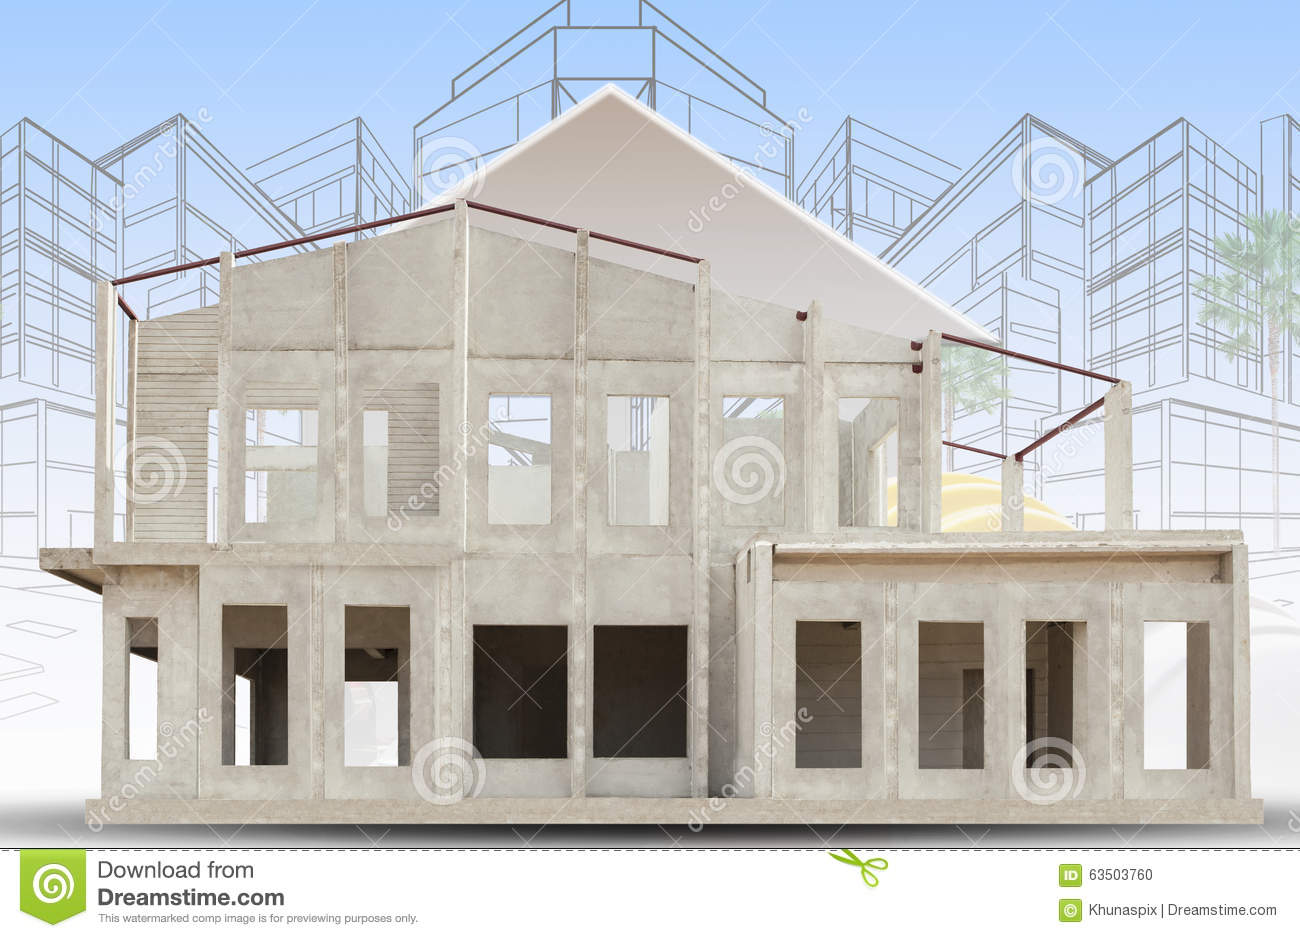 Background Property Developments : Frame of knock down house isolated white background use